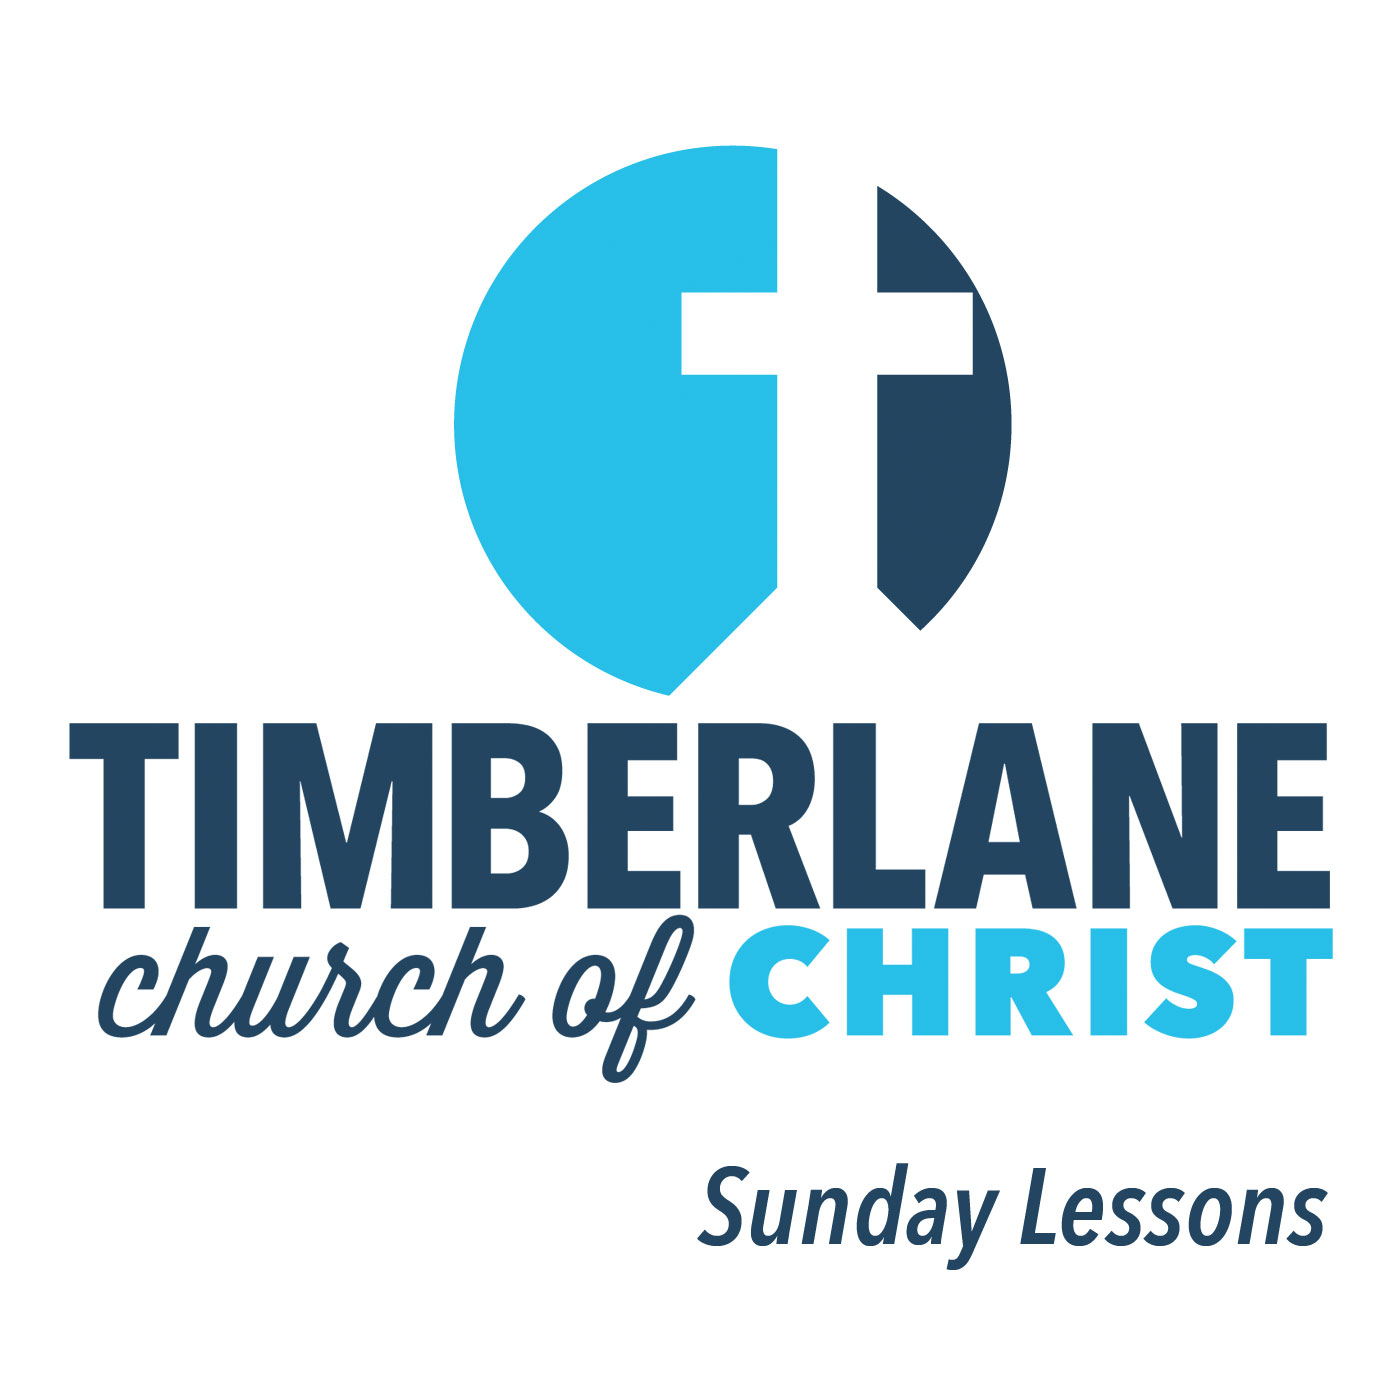 Timberlane Church of Christ Sunday Lessons